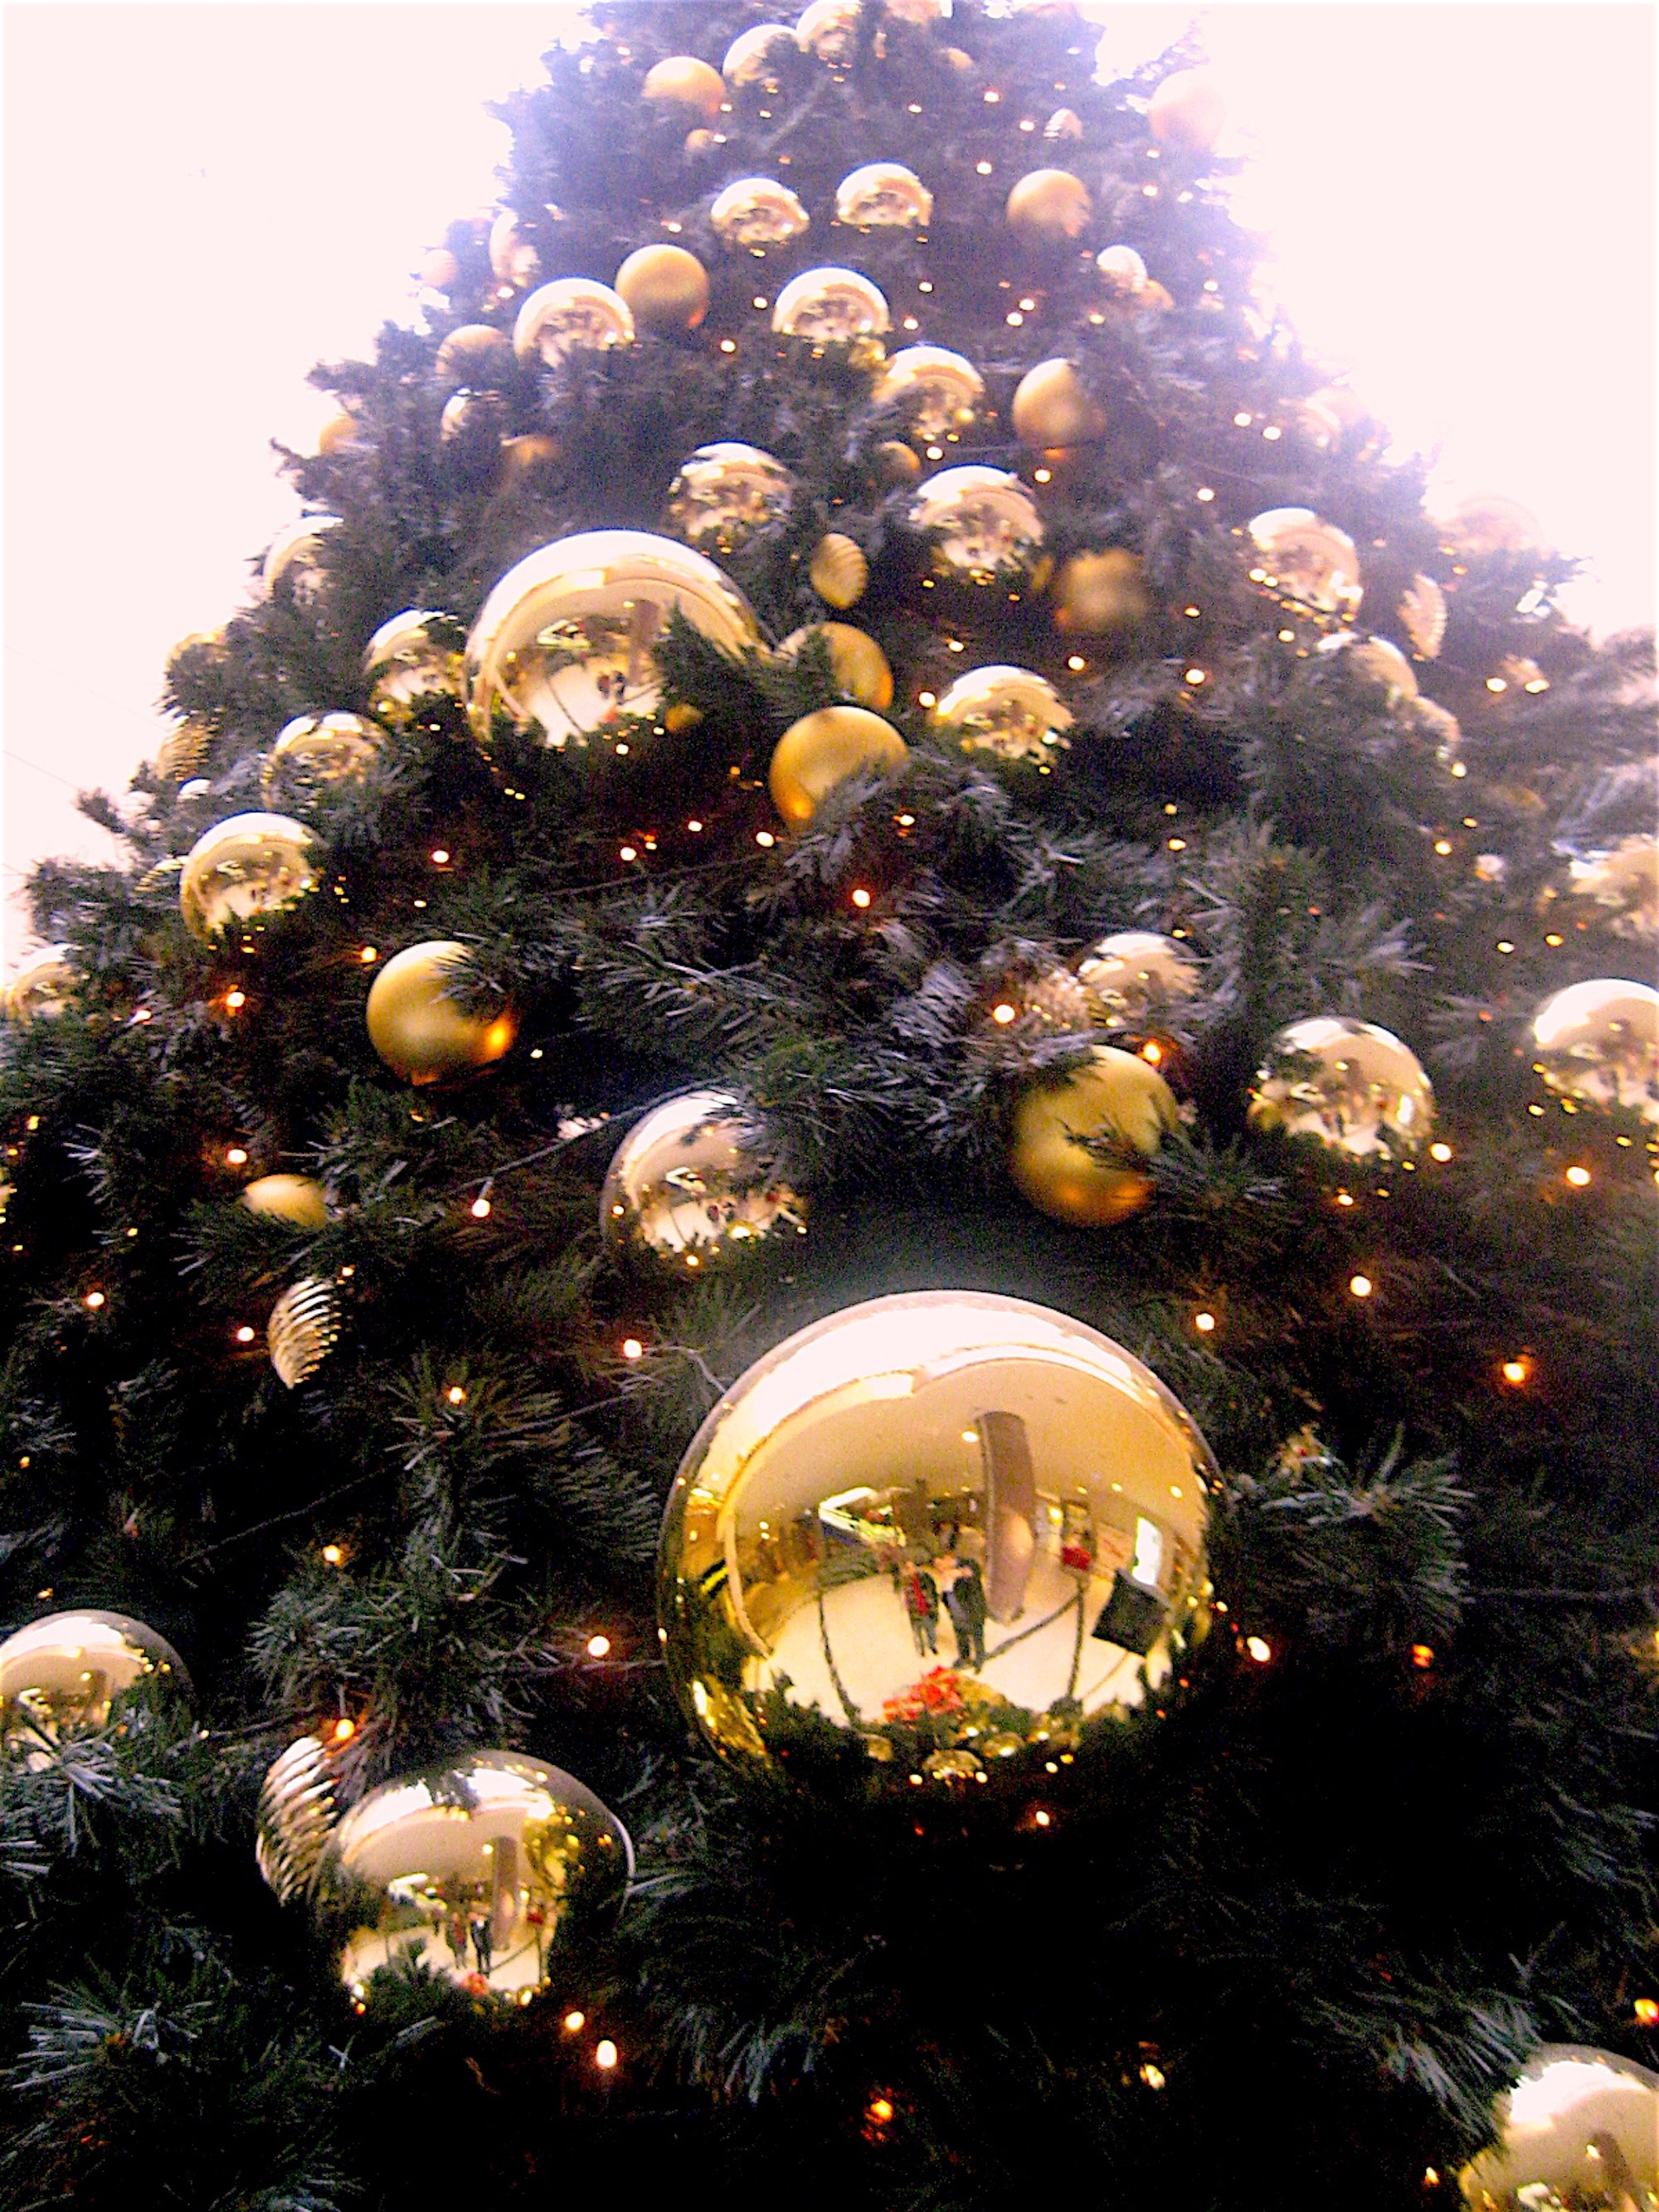 Low Angle Shot of Christmas Tree With Gold-colored Bauble, Golden, Tree, Traditional, Tradition, HQ Photo